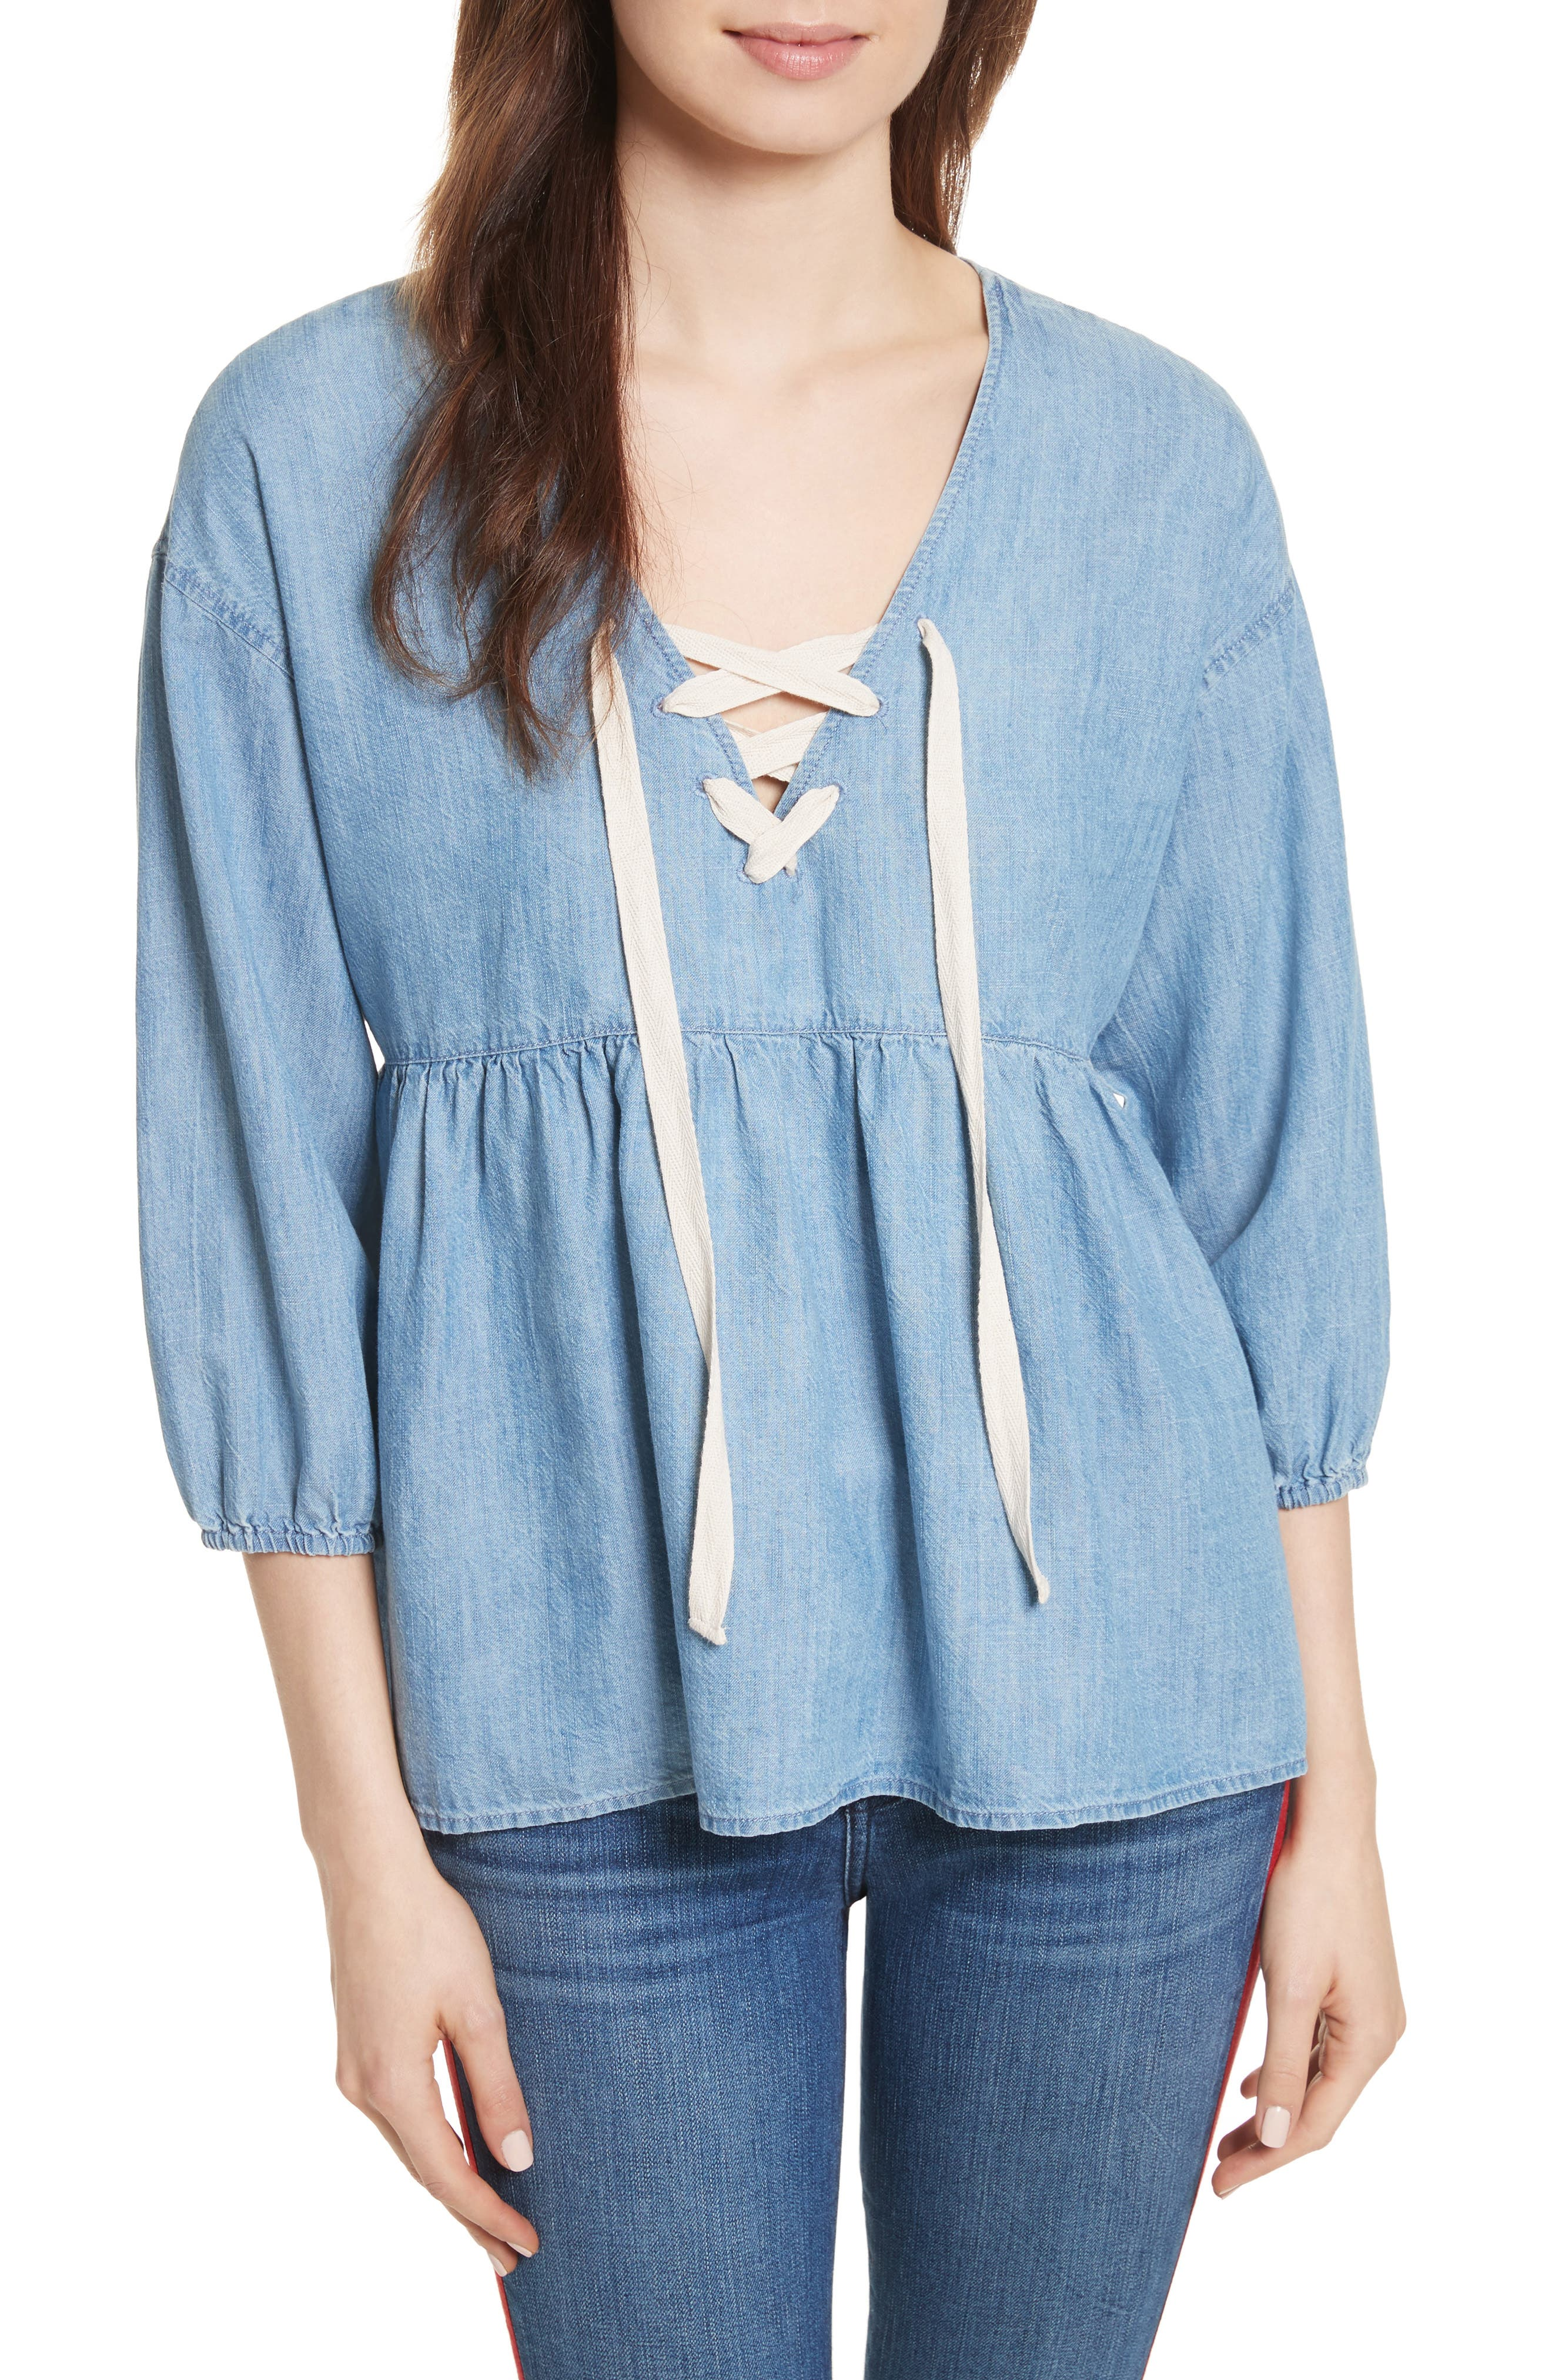 Main Image - Joie Bealette Lace-Up Chambray Top